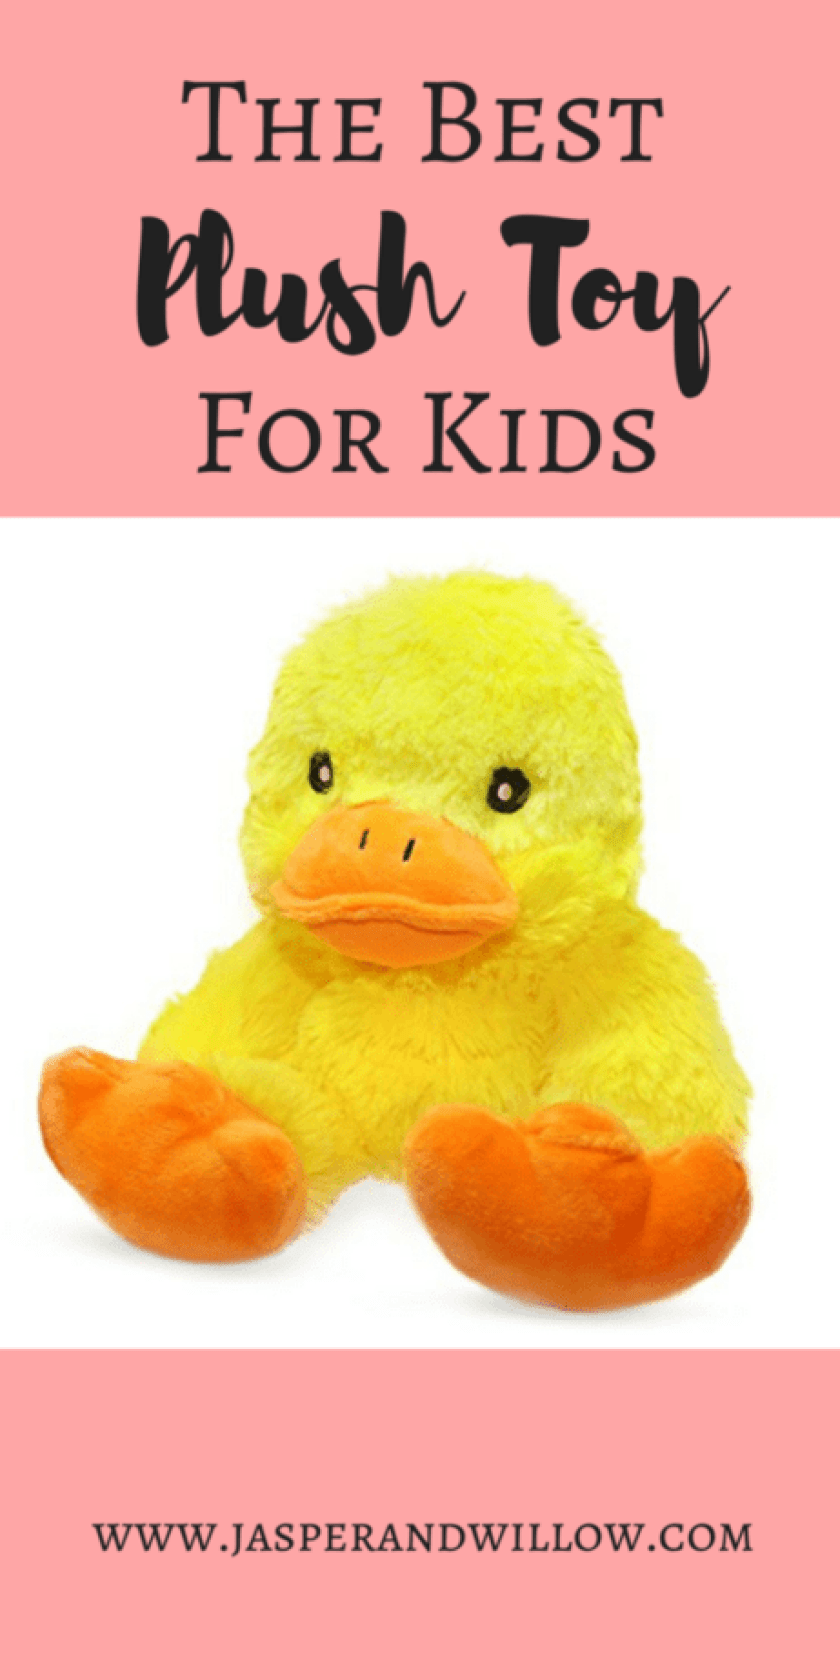 5 Tips to Get Your Child to Sleep in a Few Minutes | Plush Toy, Children's Toys, Hot Therapy, Cold Therapy, Aromatherapy, Aromatherapy for Kids| #toysforkids #childrenstoys #aromatherapy #aromatherapyforkids